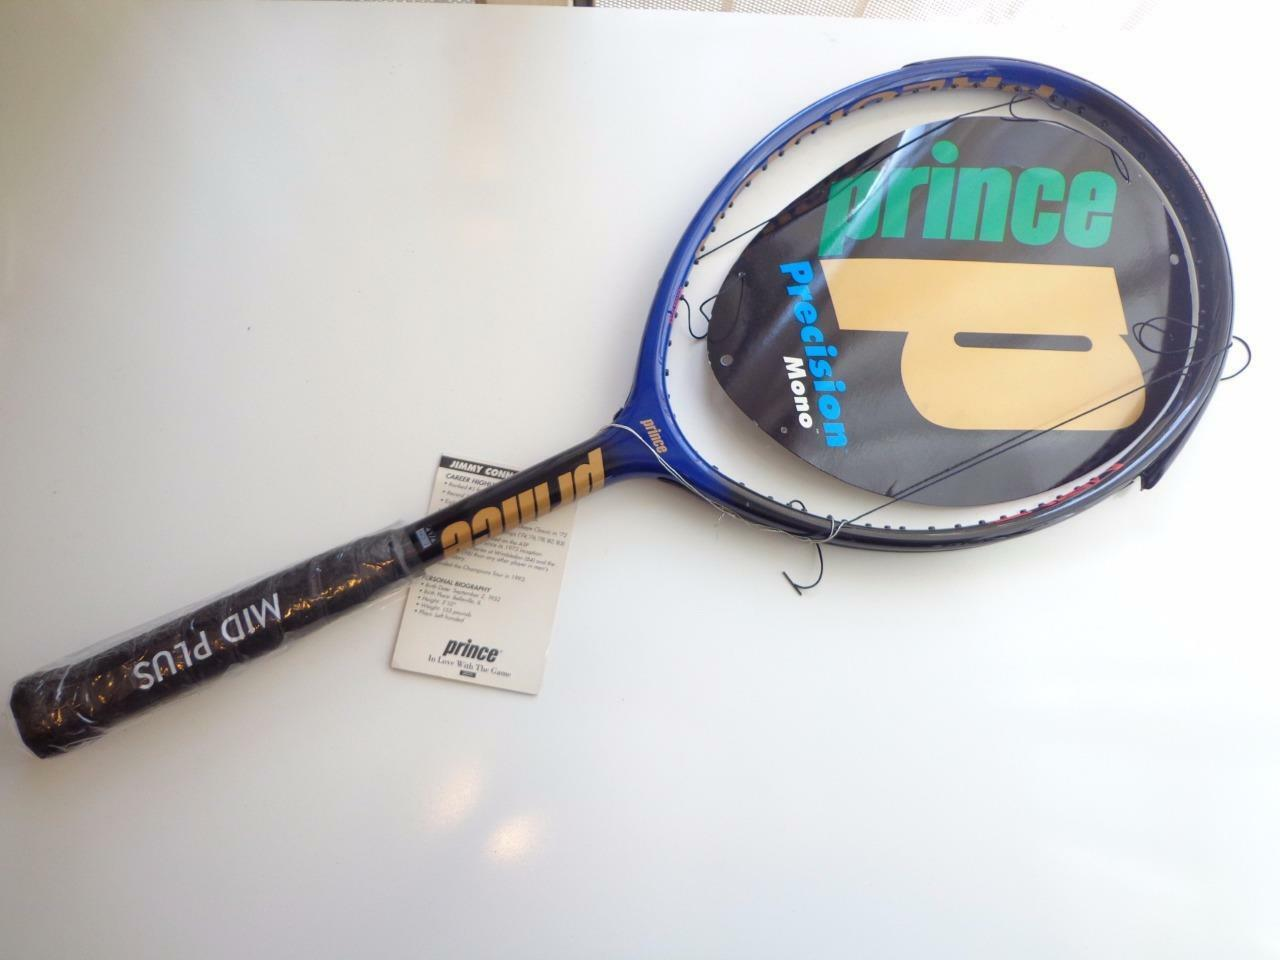 NEW Rare Prince Precision MONO Jimmy Connors 96 head 4 1/2 grip Tennis Racquet